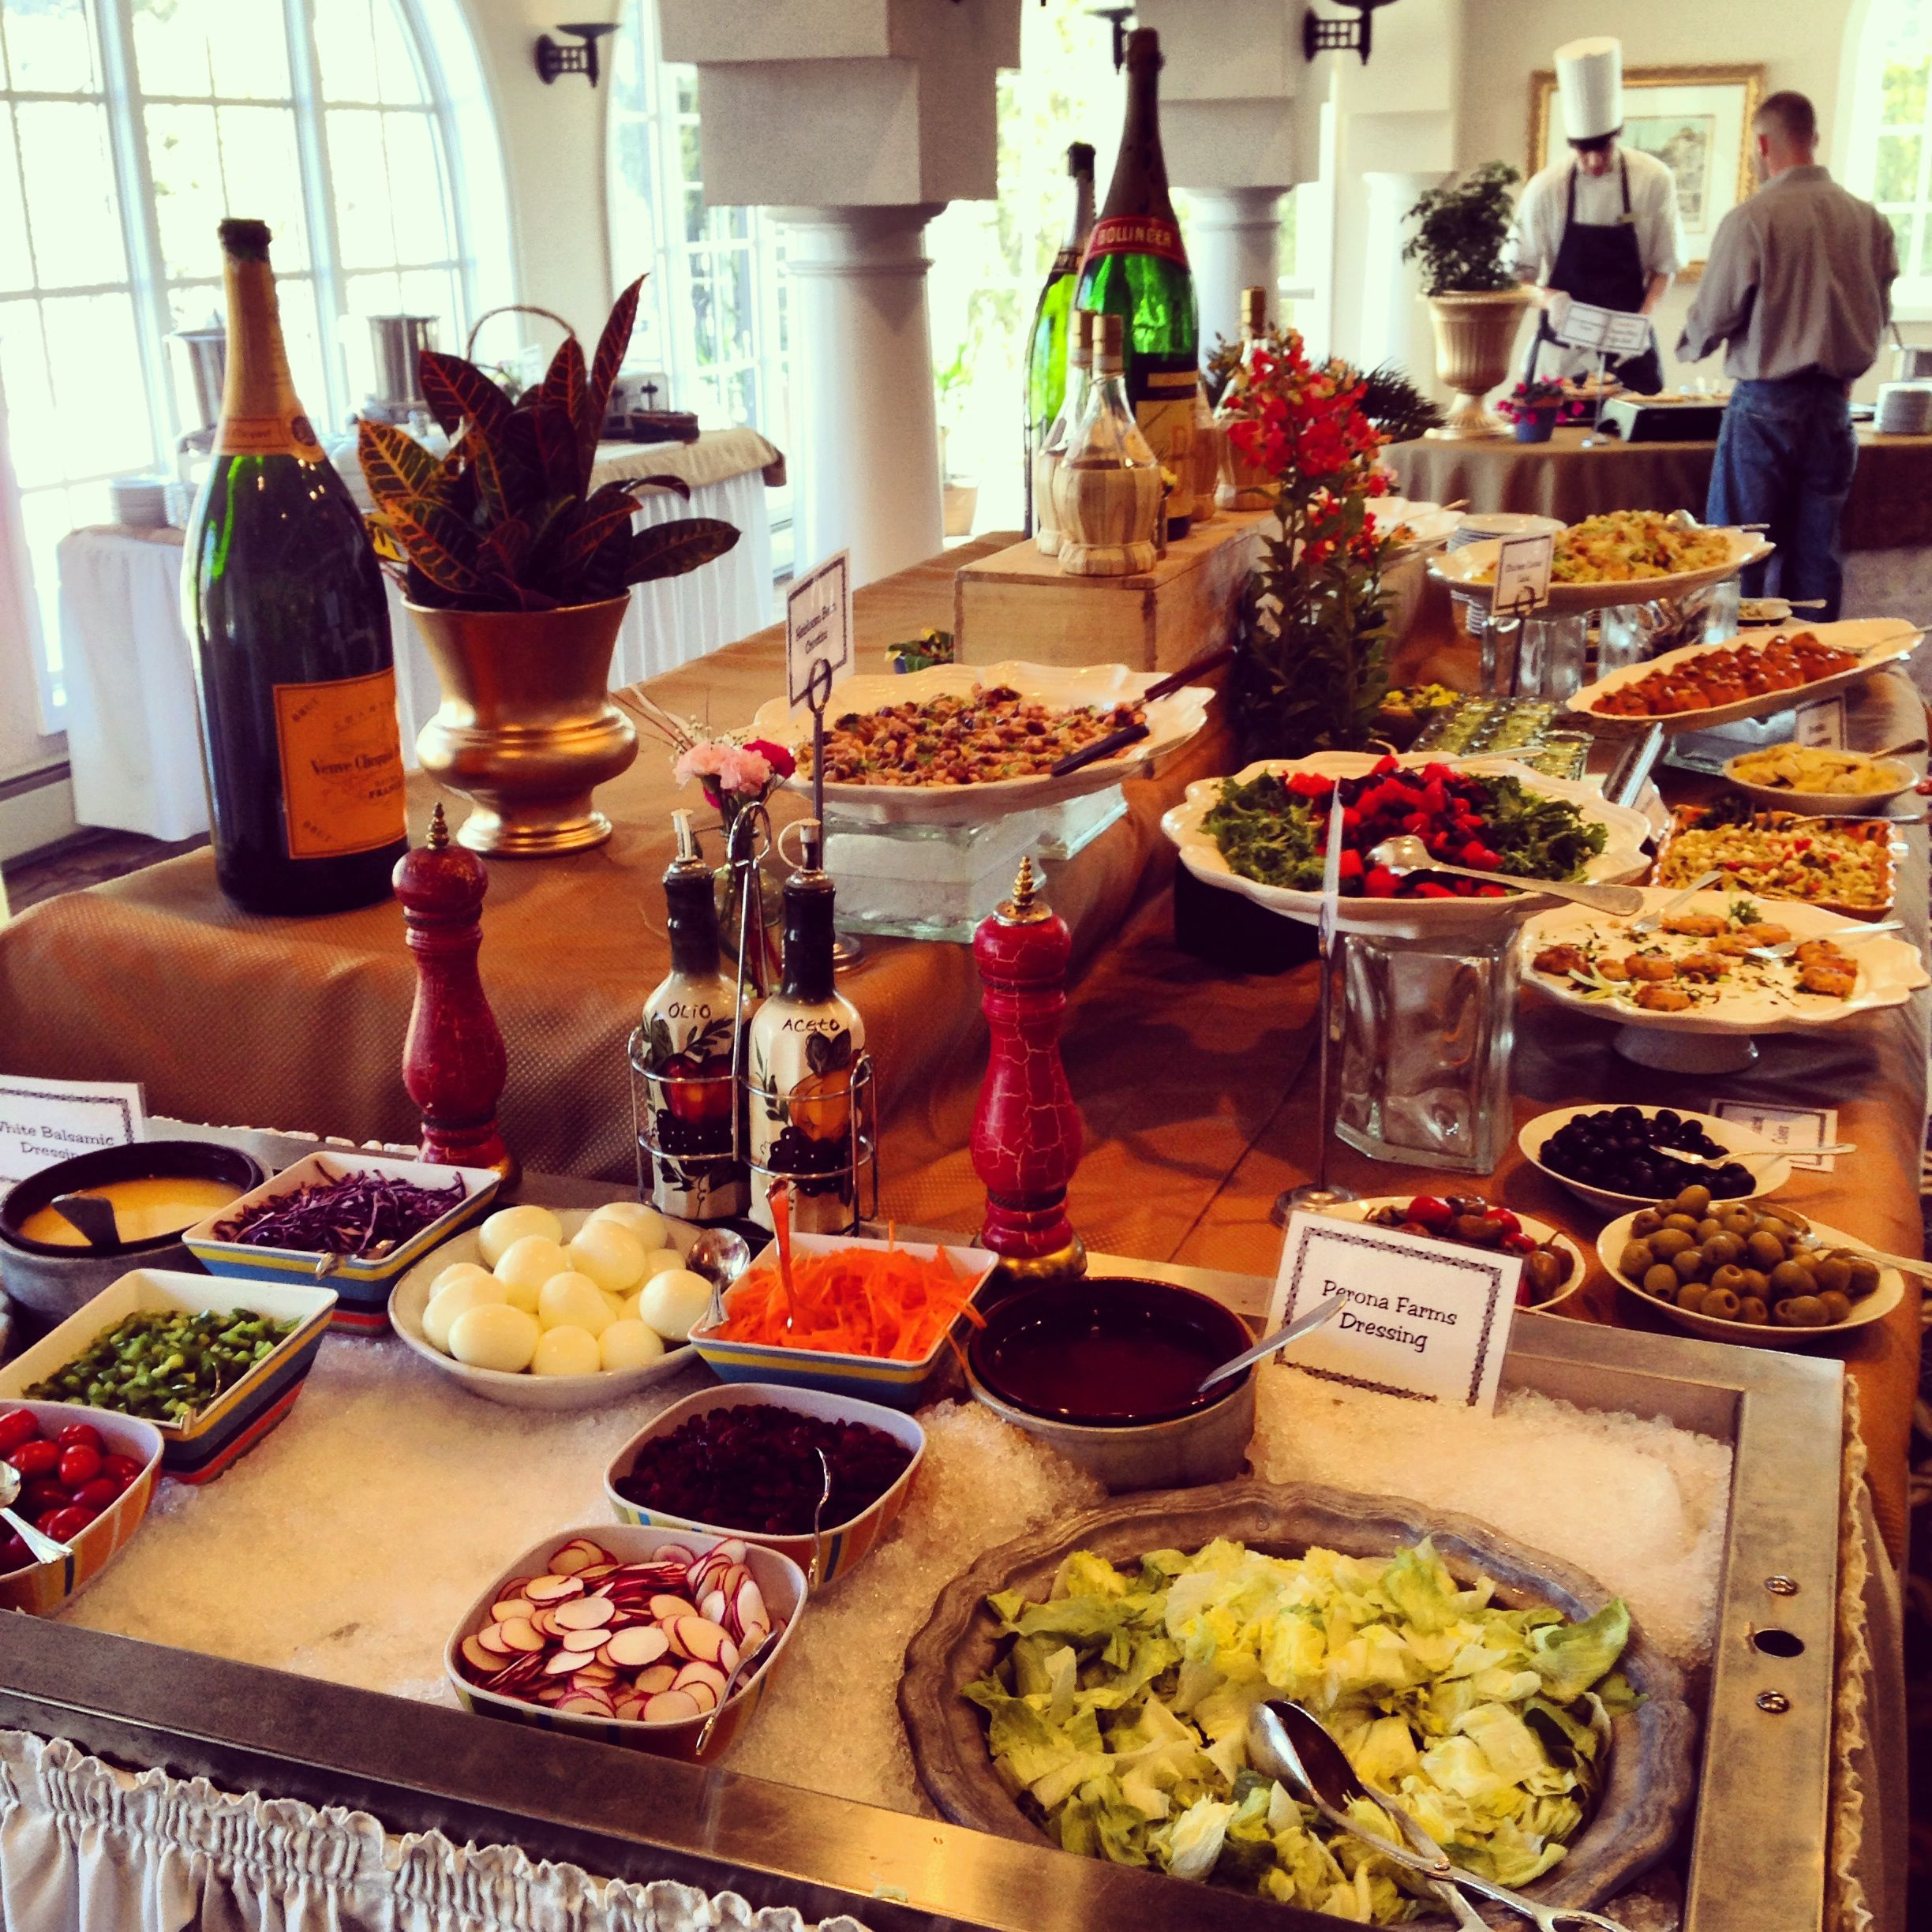 Nj Wedding Venue Events Catering Sunday Brunch Sunday Brunch Brunch Event Catering